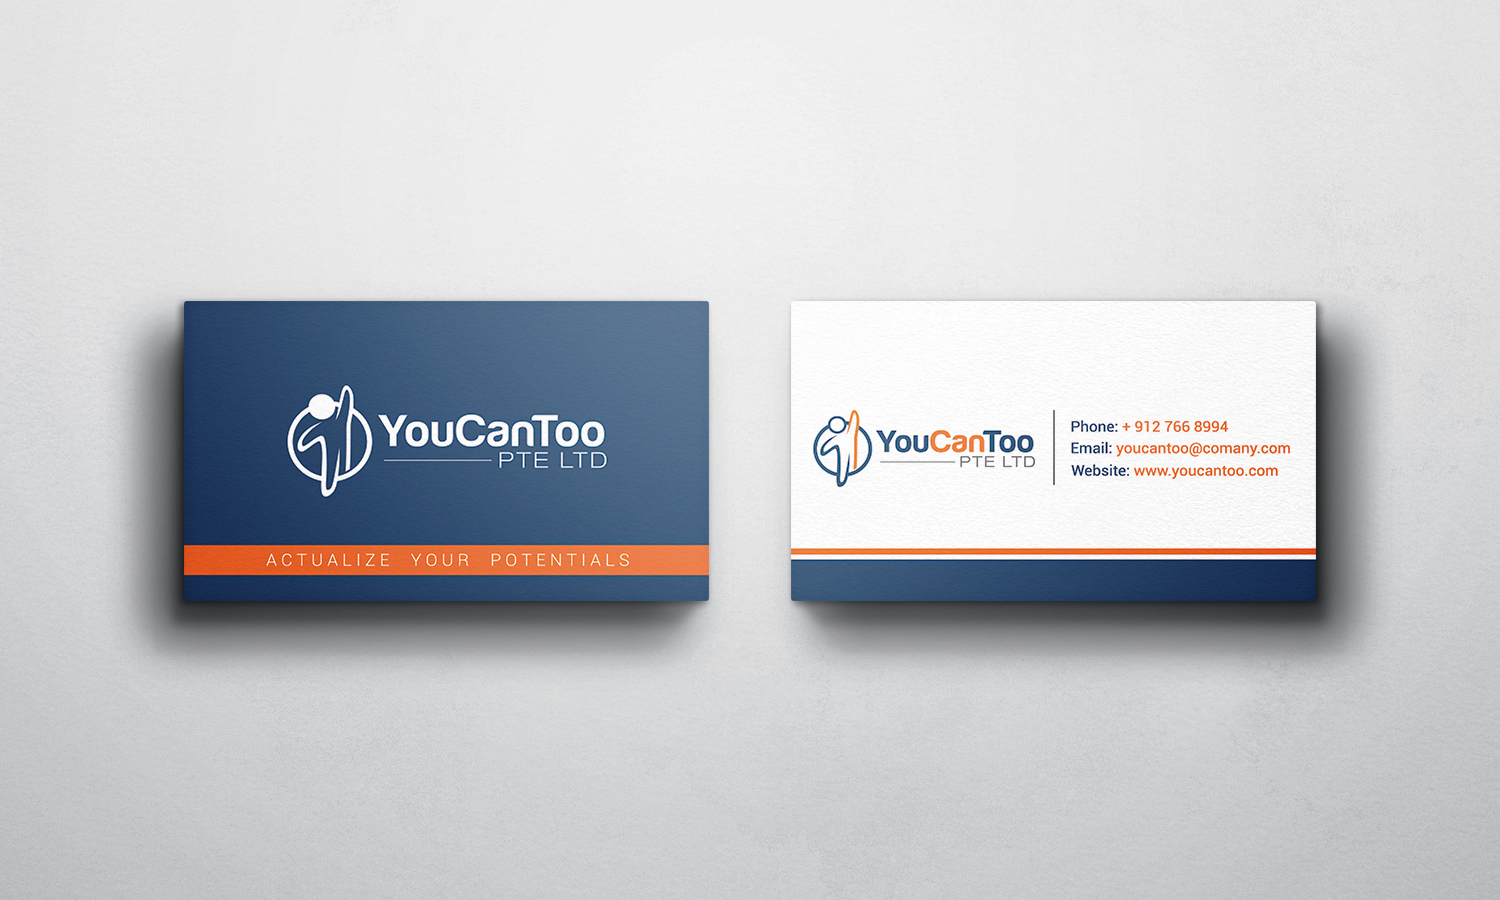 Character Design Course Singapore : Training business card design for you can too pte ltd by